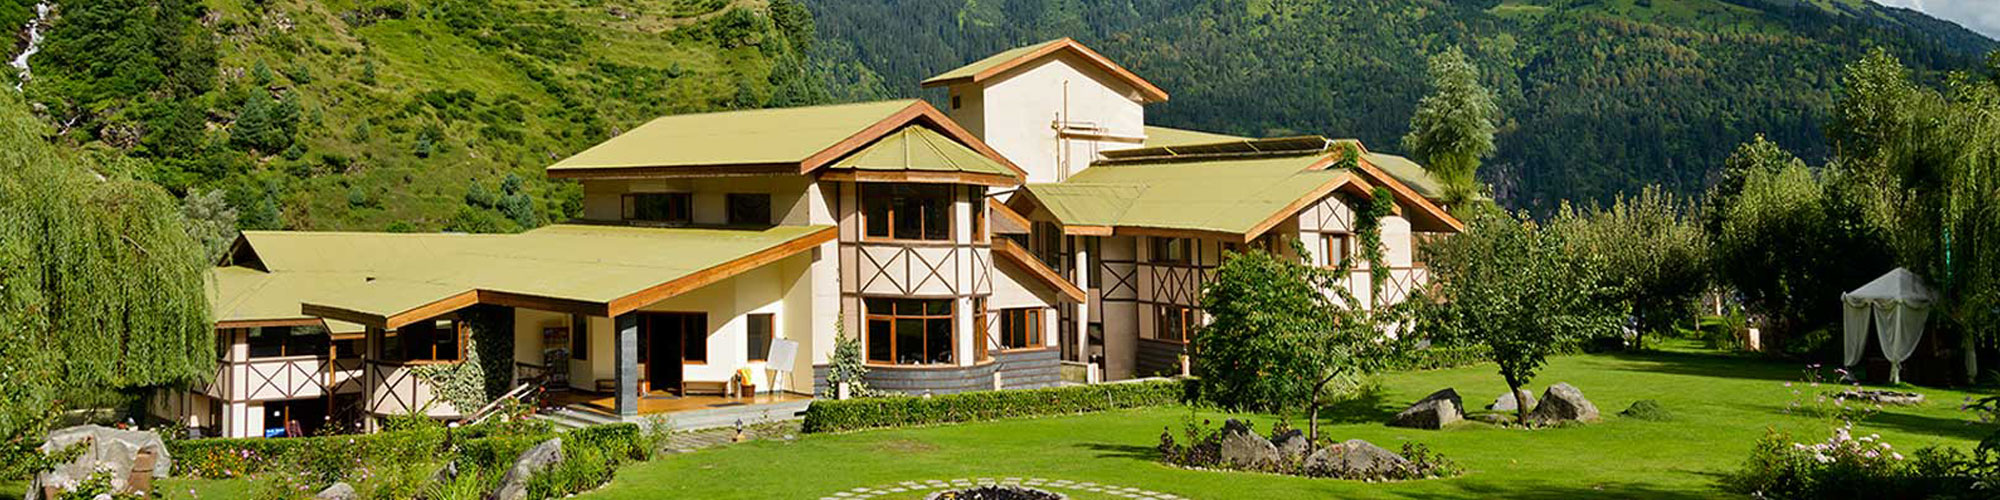 solang-valley Best Resorts, Manali, Hotels